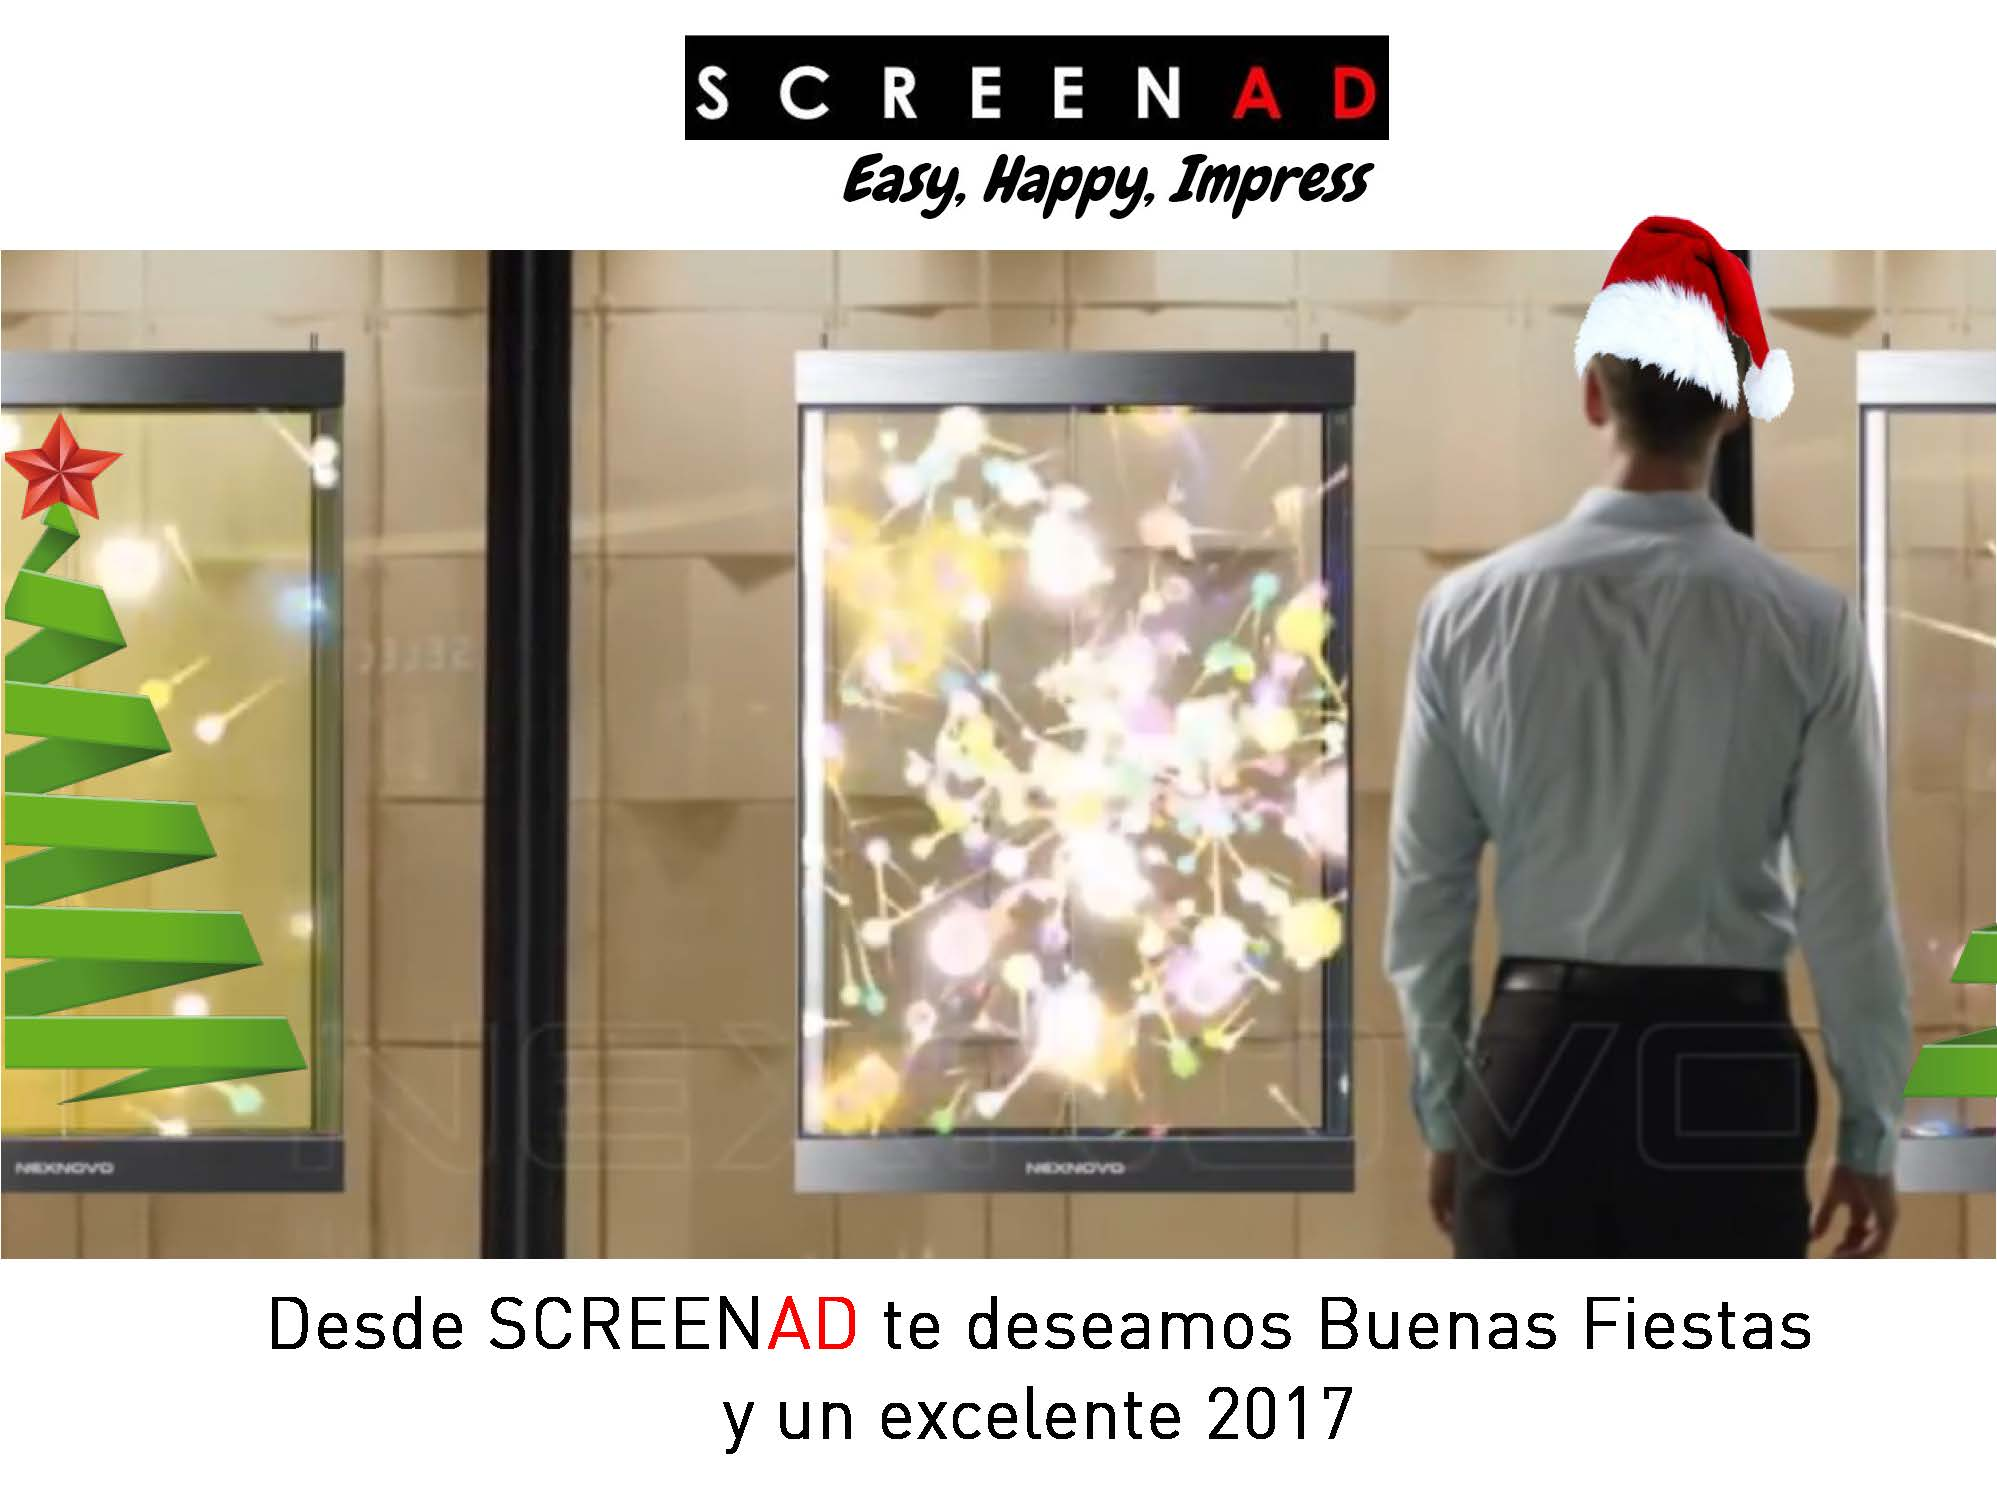 screenad communications, los especialistas de pantallas de led transparentes les desea Feliz 2017